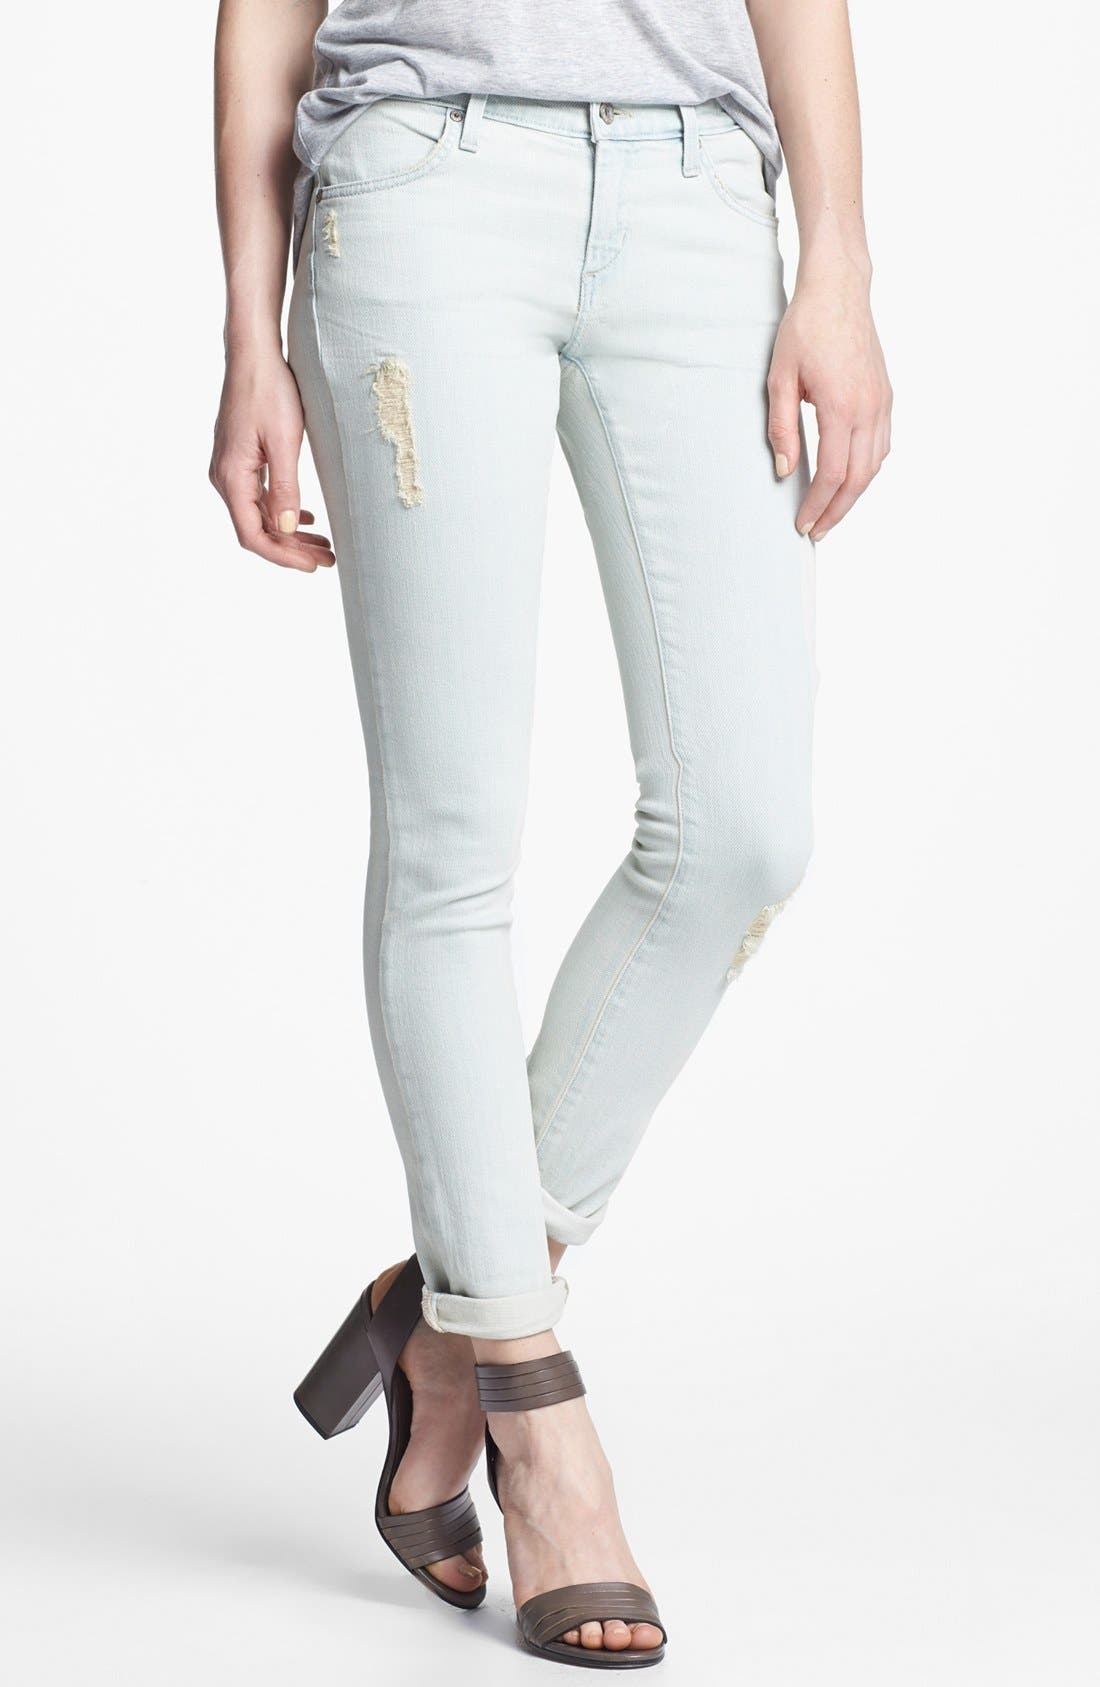 Alternate Image 1 Selected - James Jeans 'Neo Beau' Distressed Boyfriend Jeans (Petite) (Online Only)